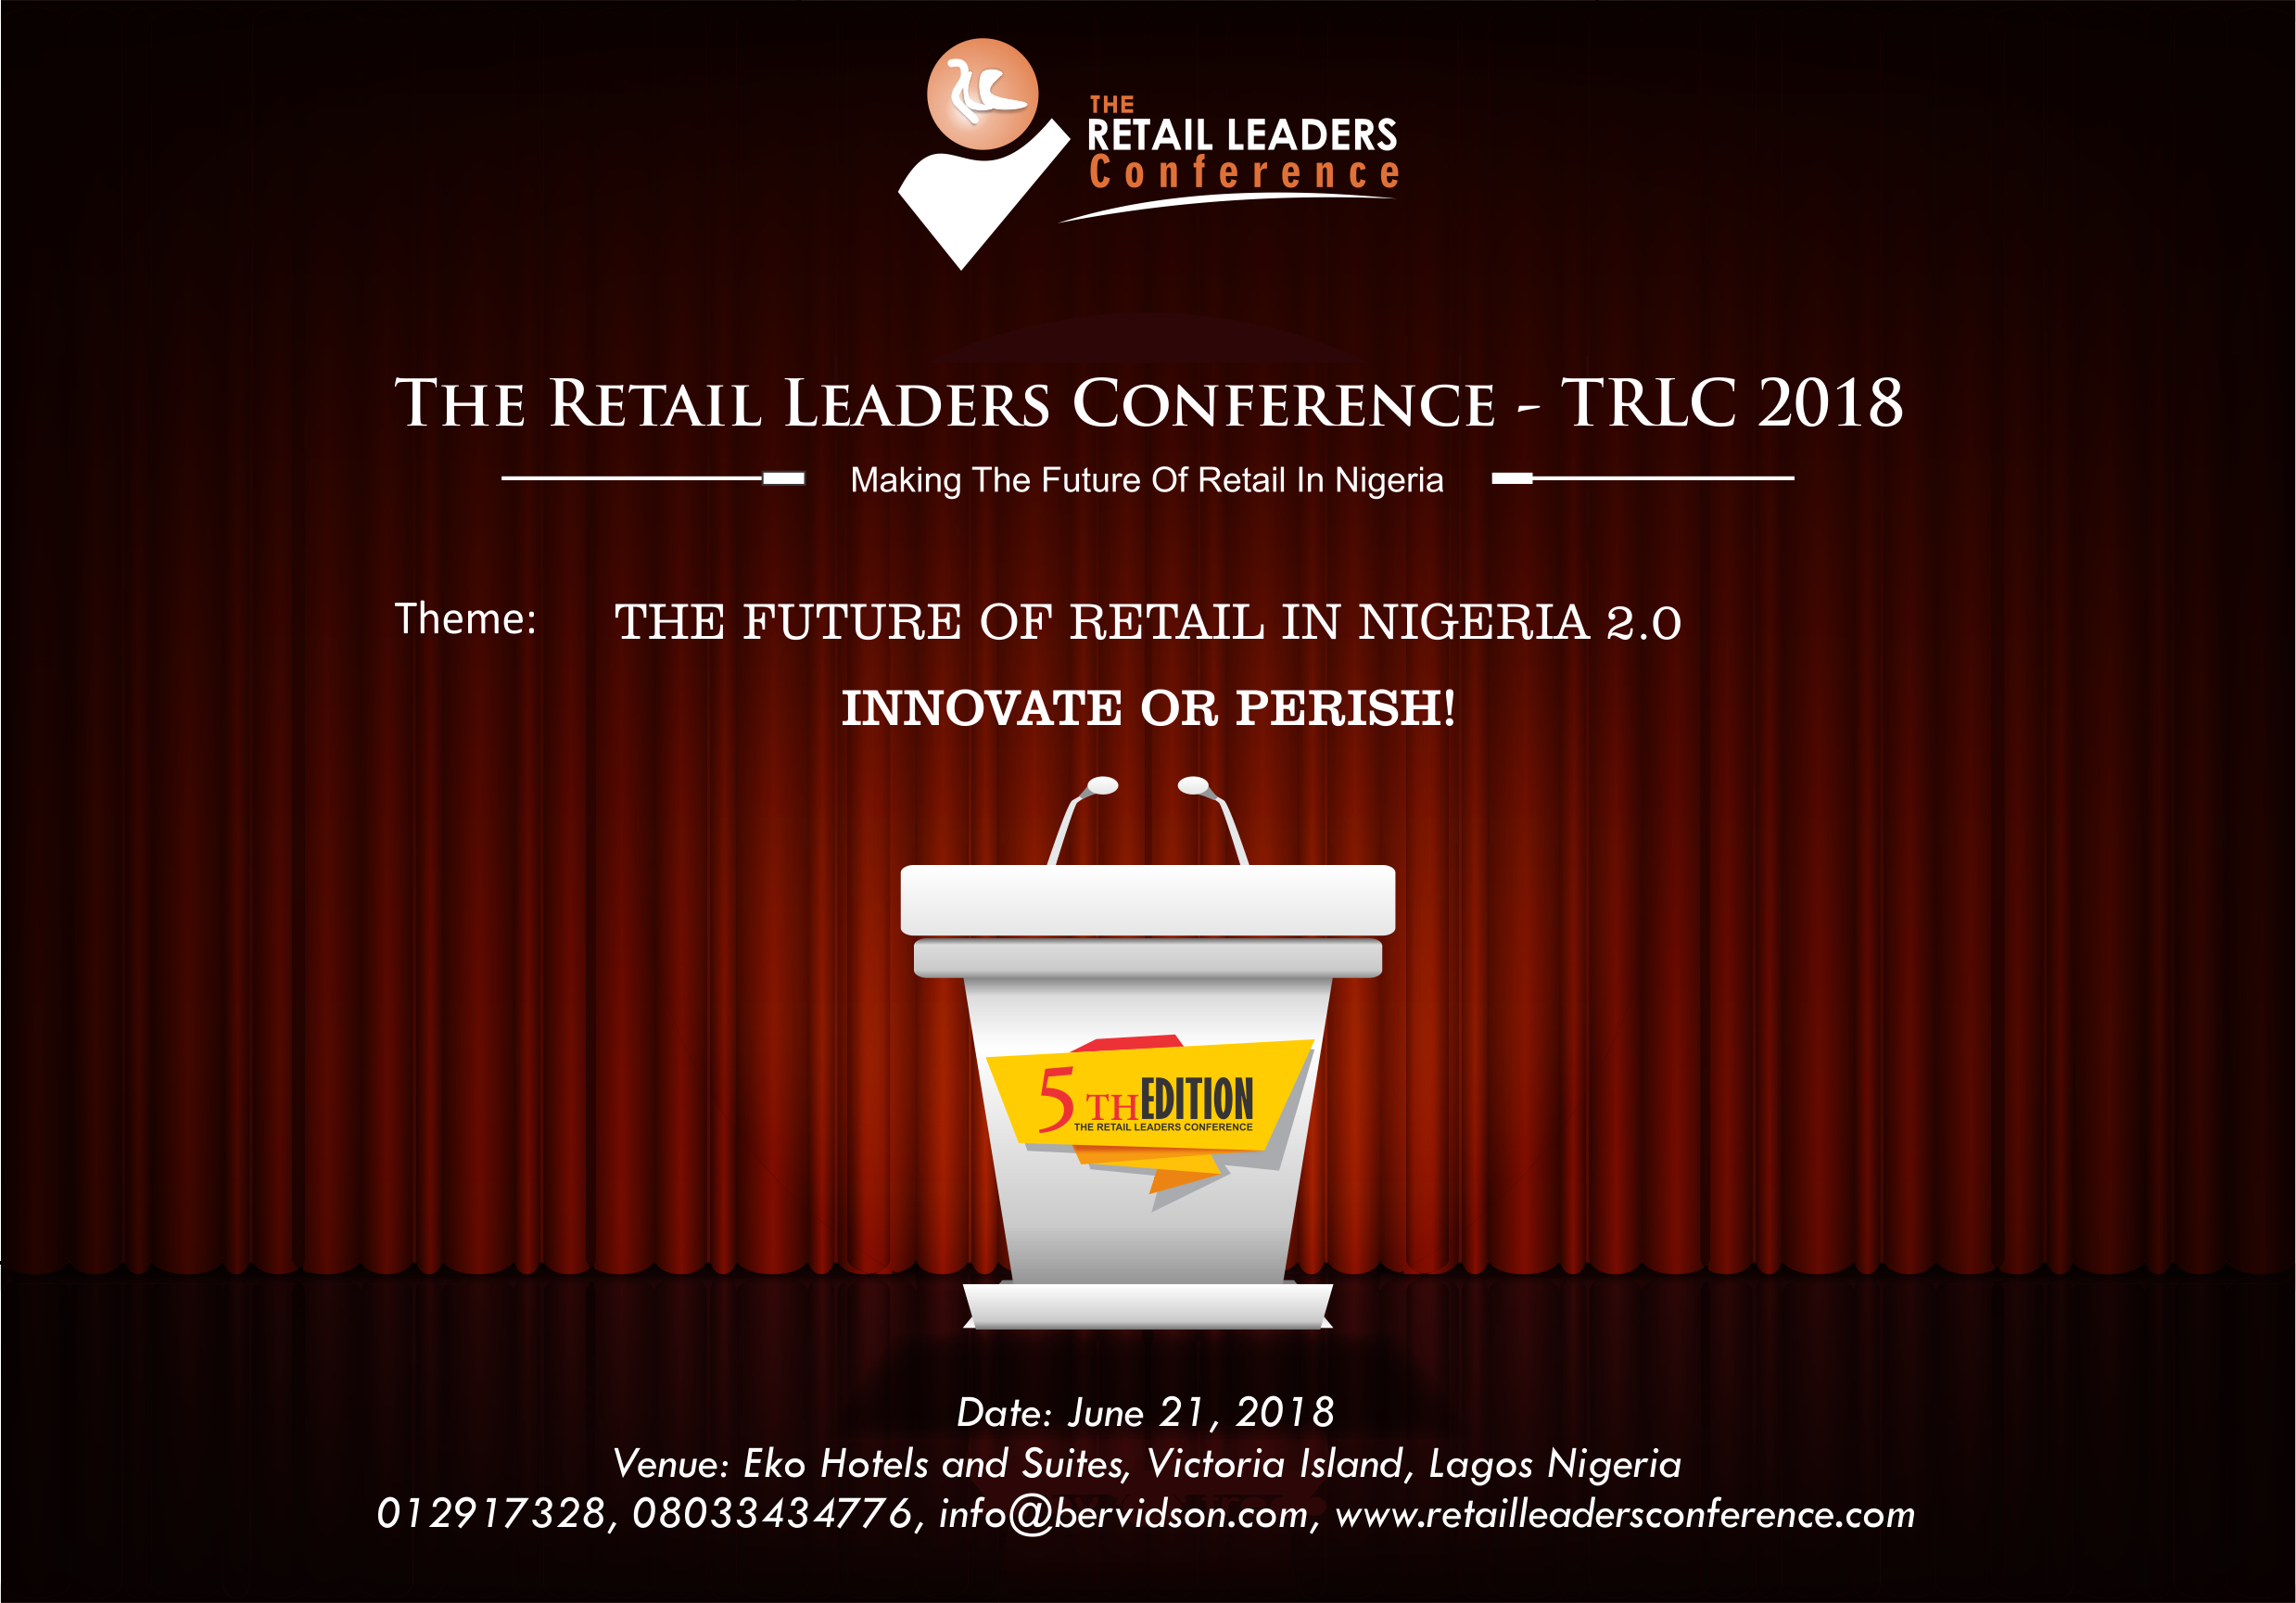 The 5th Edition of The Retail Leaders Conference – TRLC 2018 is Here